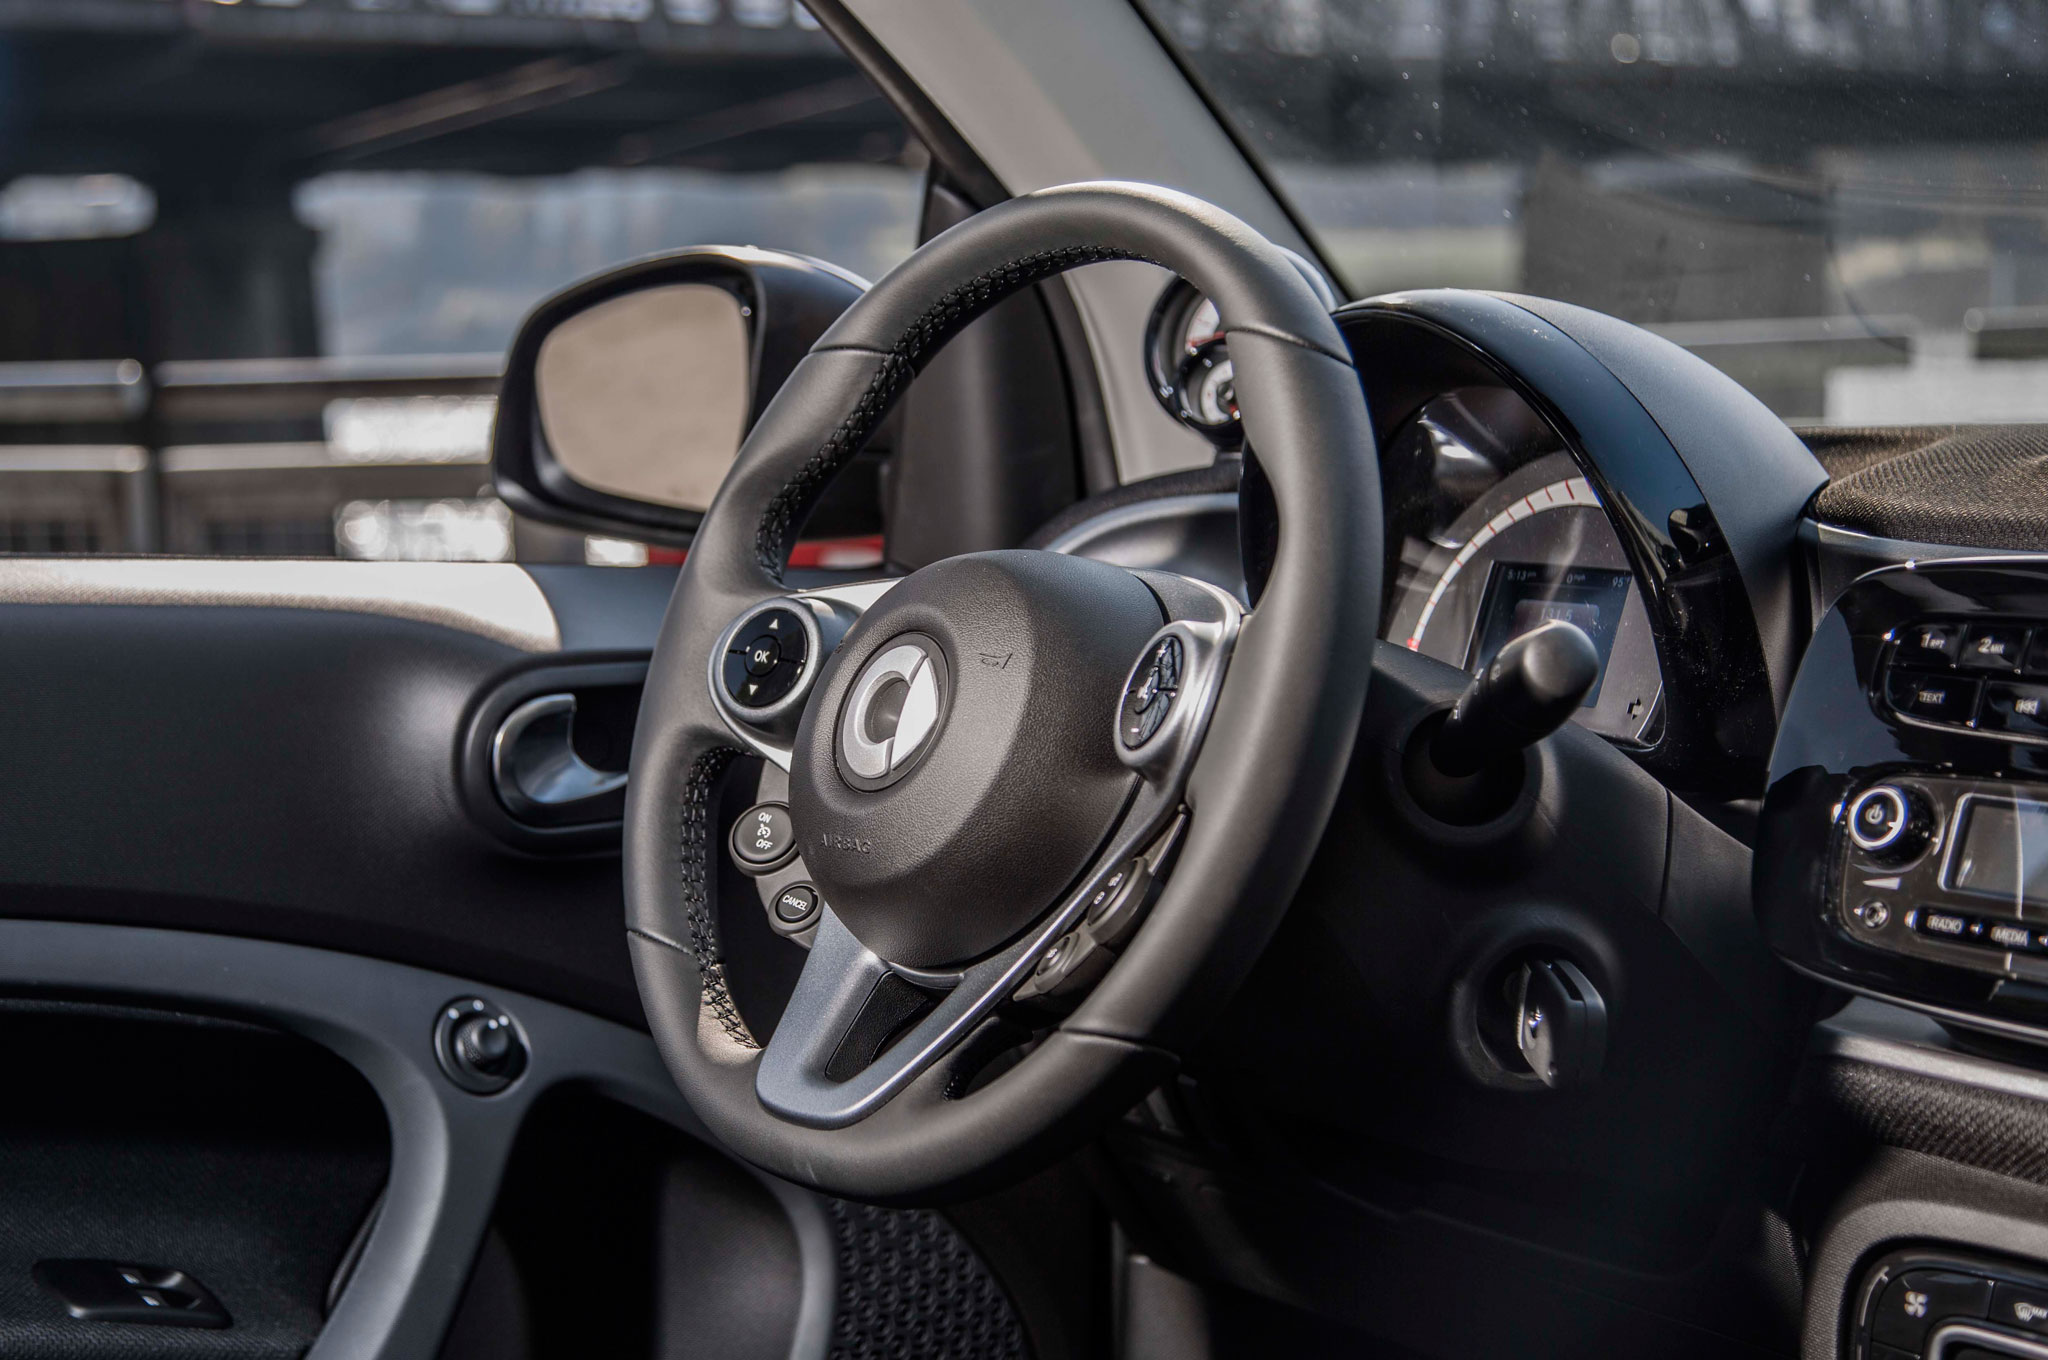 2016 Smart Fortwo Steering Wheel (Photo 9 of 17)